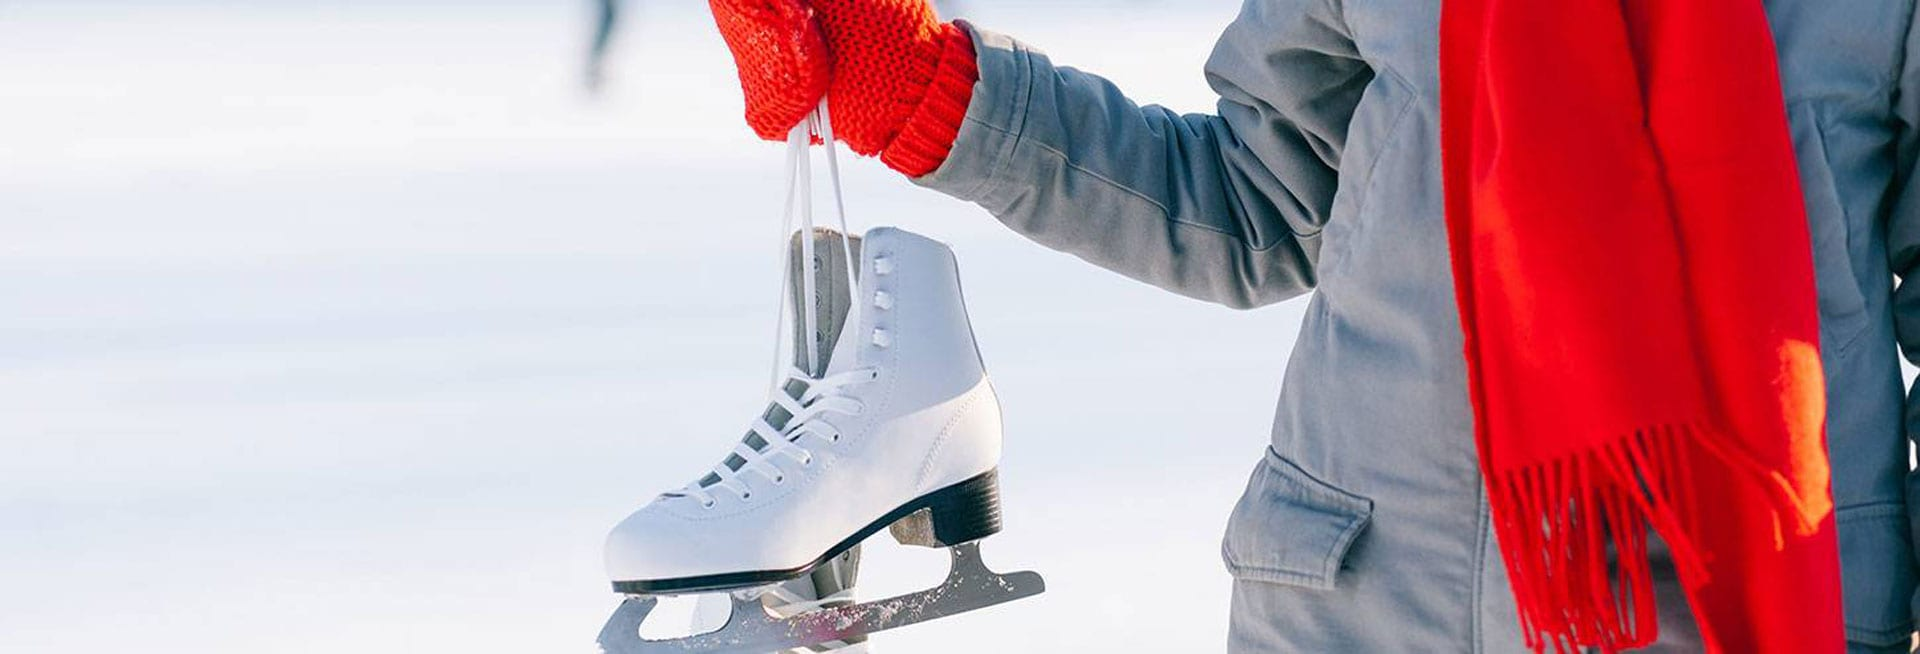 Person holding an ice skate.